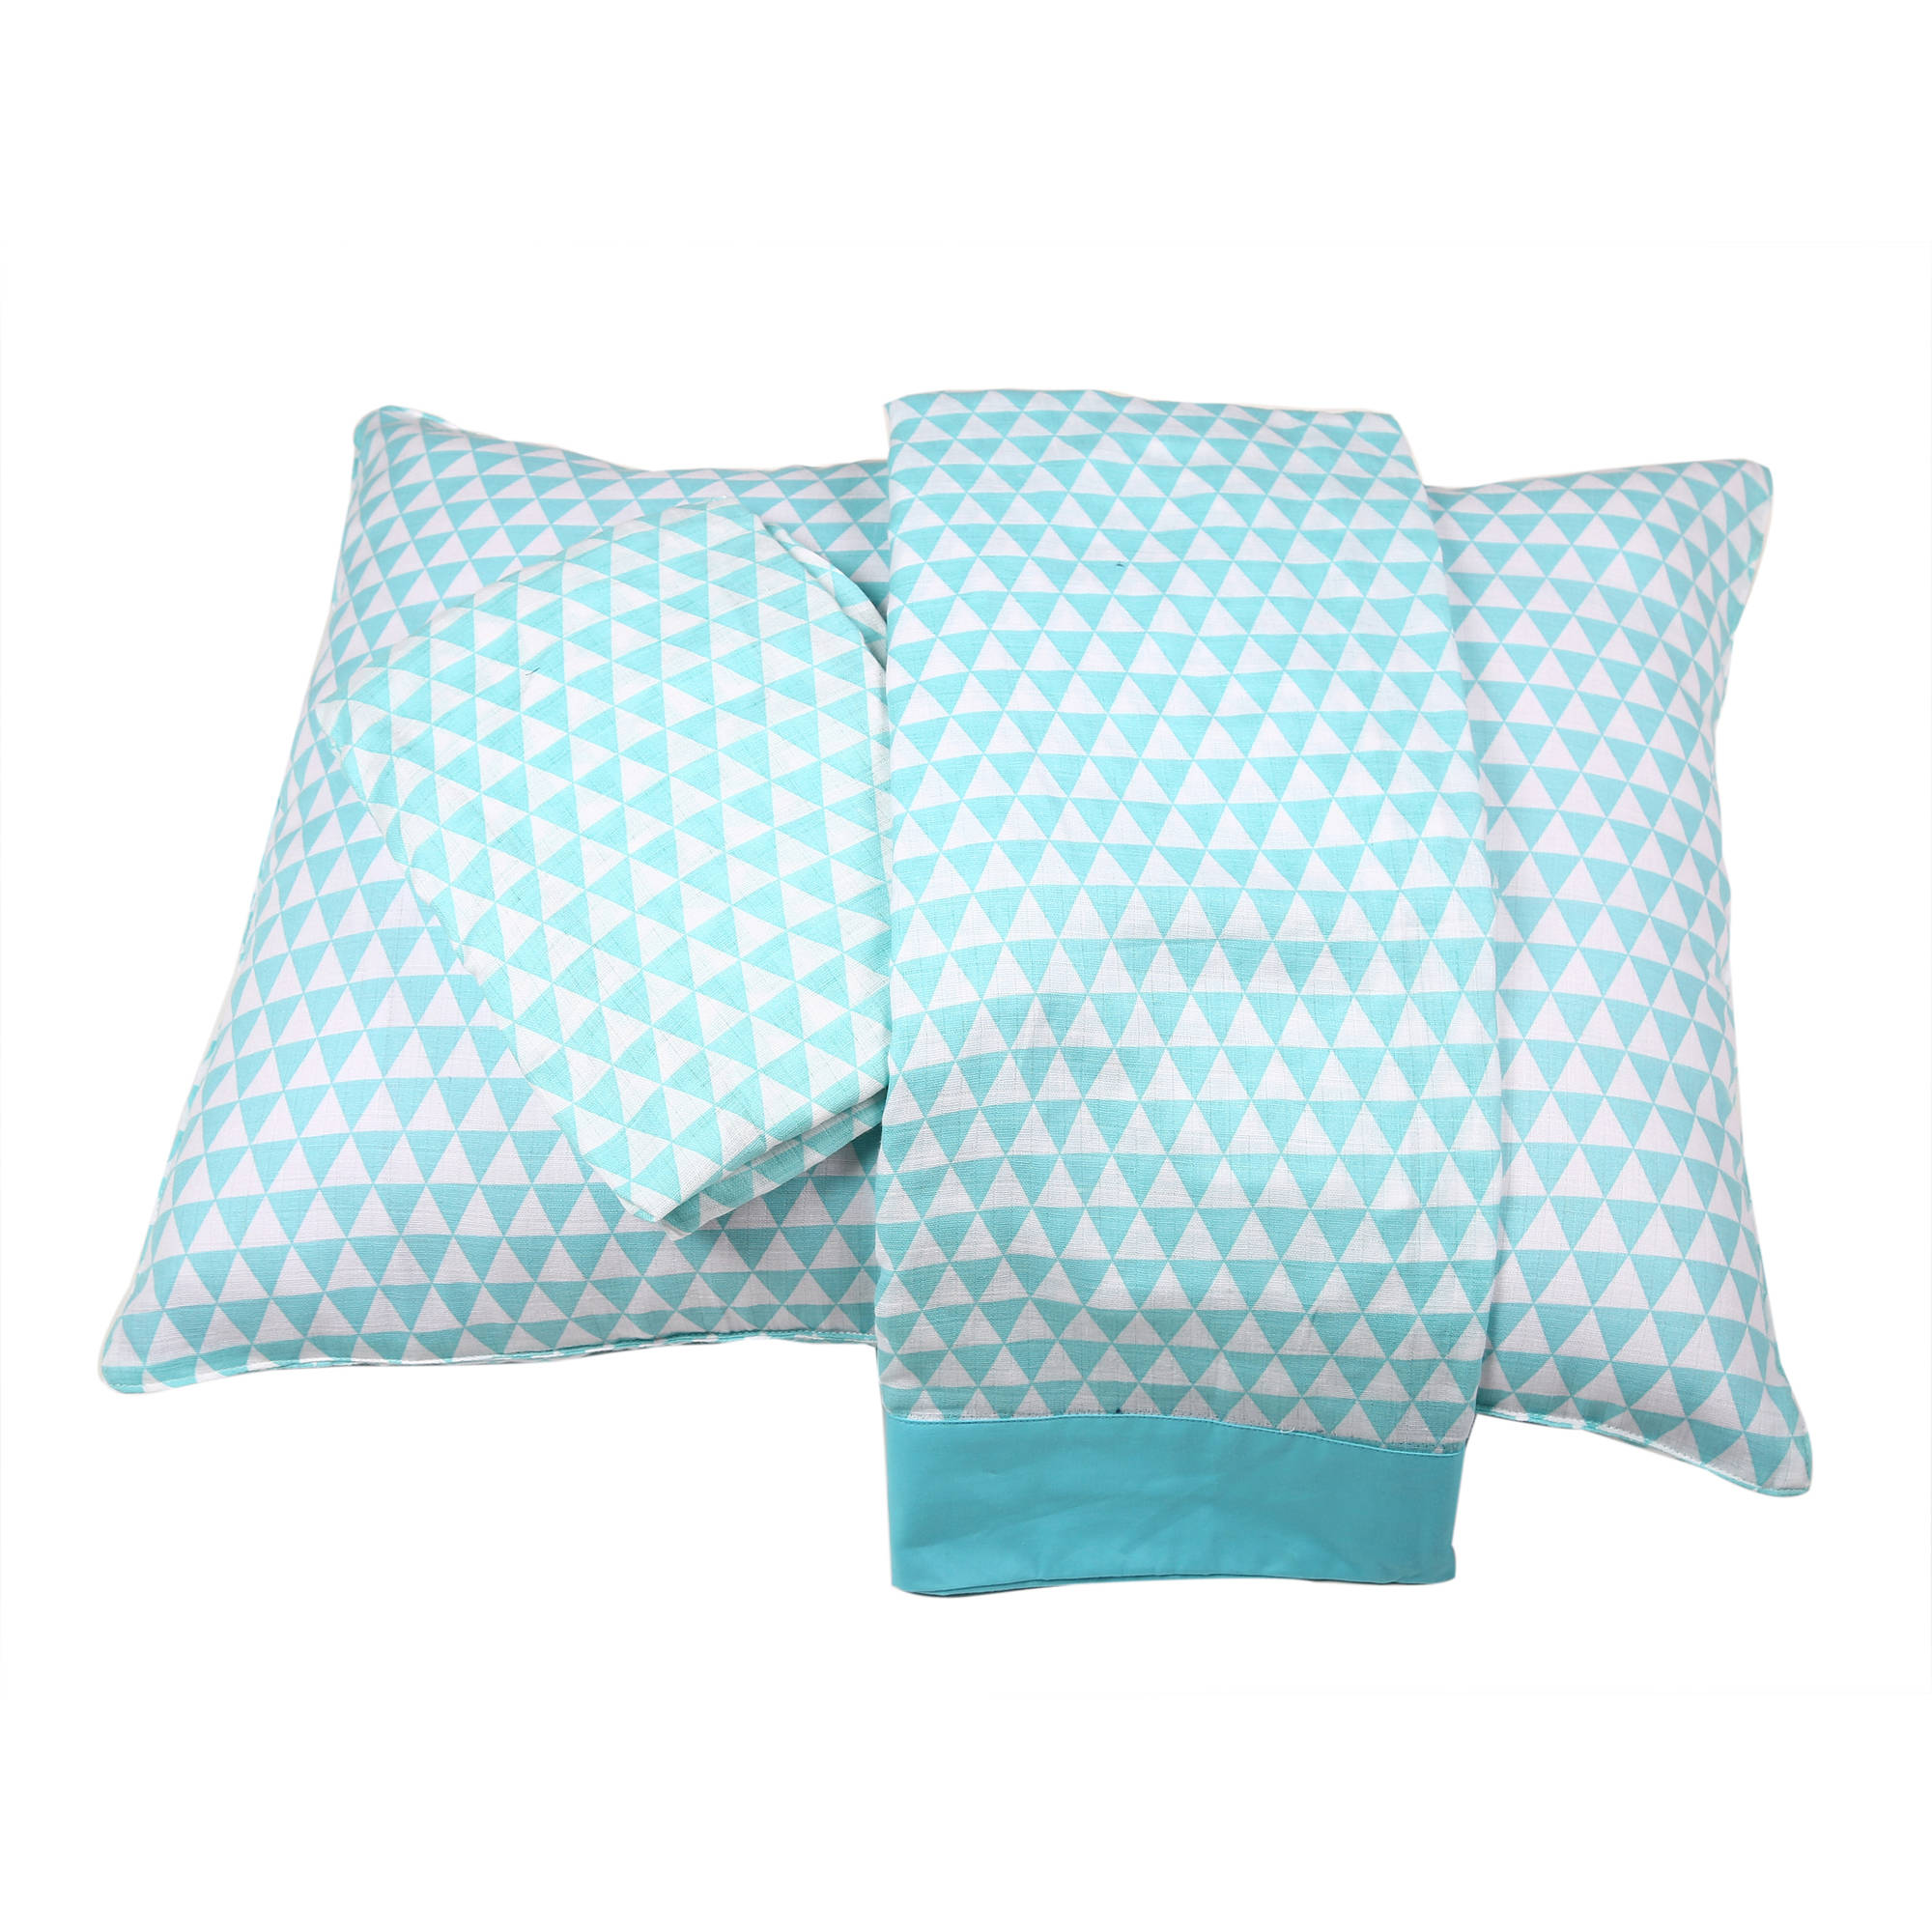 Bacati - Aztec/Tribal Aqua/Navy 3-Piece 100% Cotton breathable Muslin Toddler Bedding Sheet Set, Small Triangles